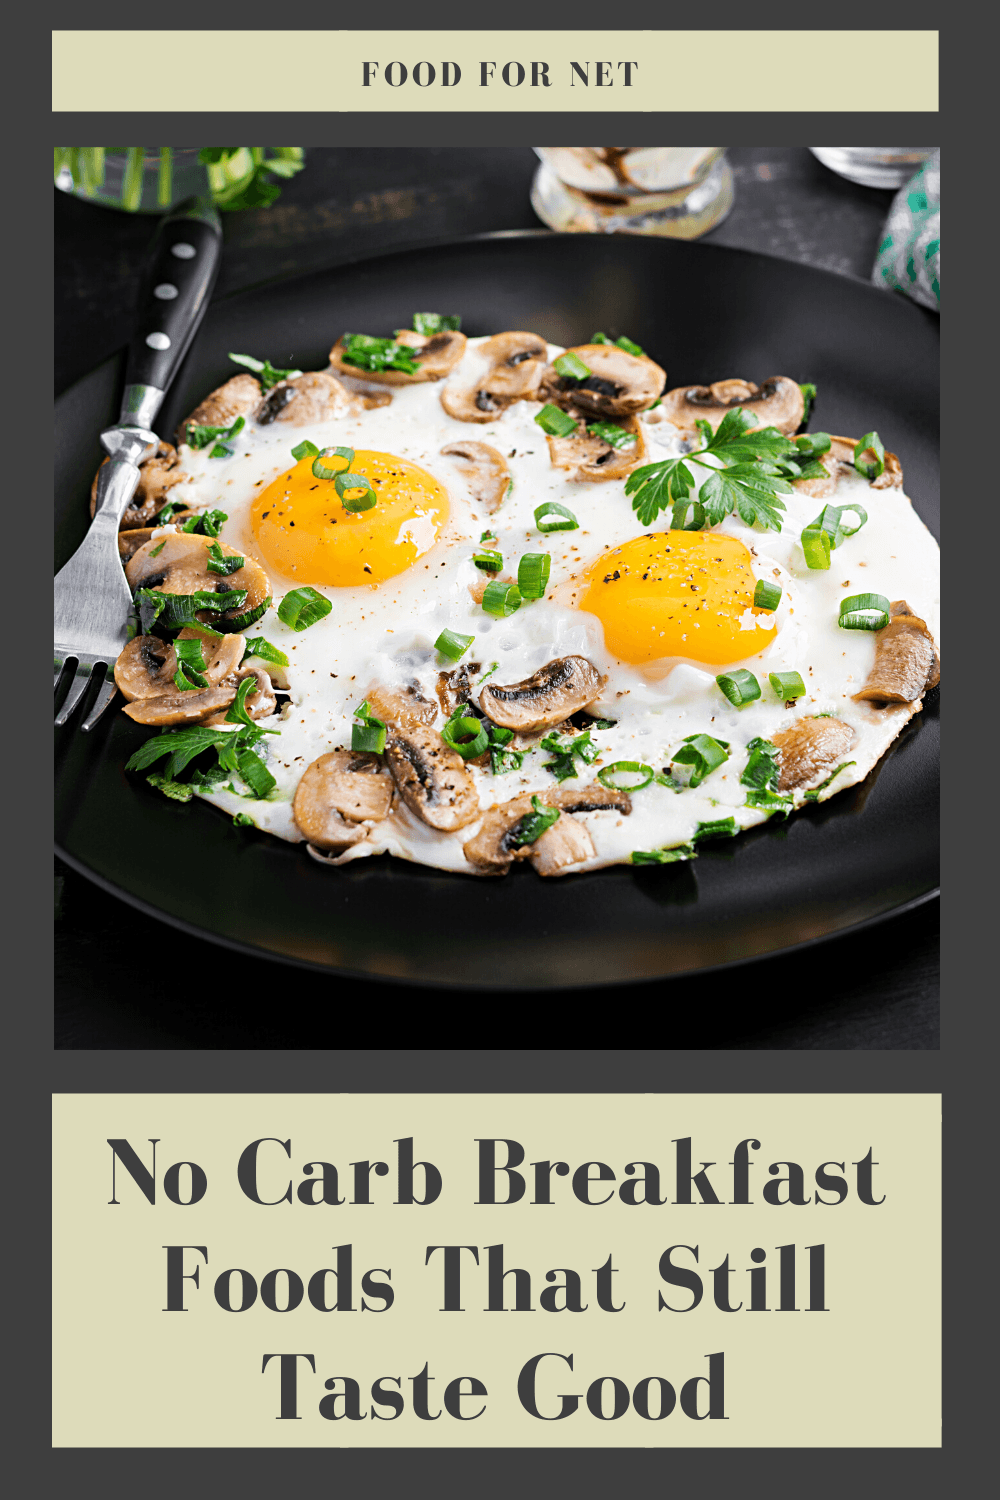 No Carb Breakfast Foods That Are Still Healthy And Tasty